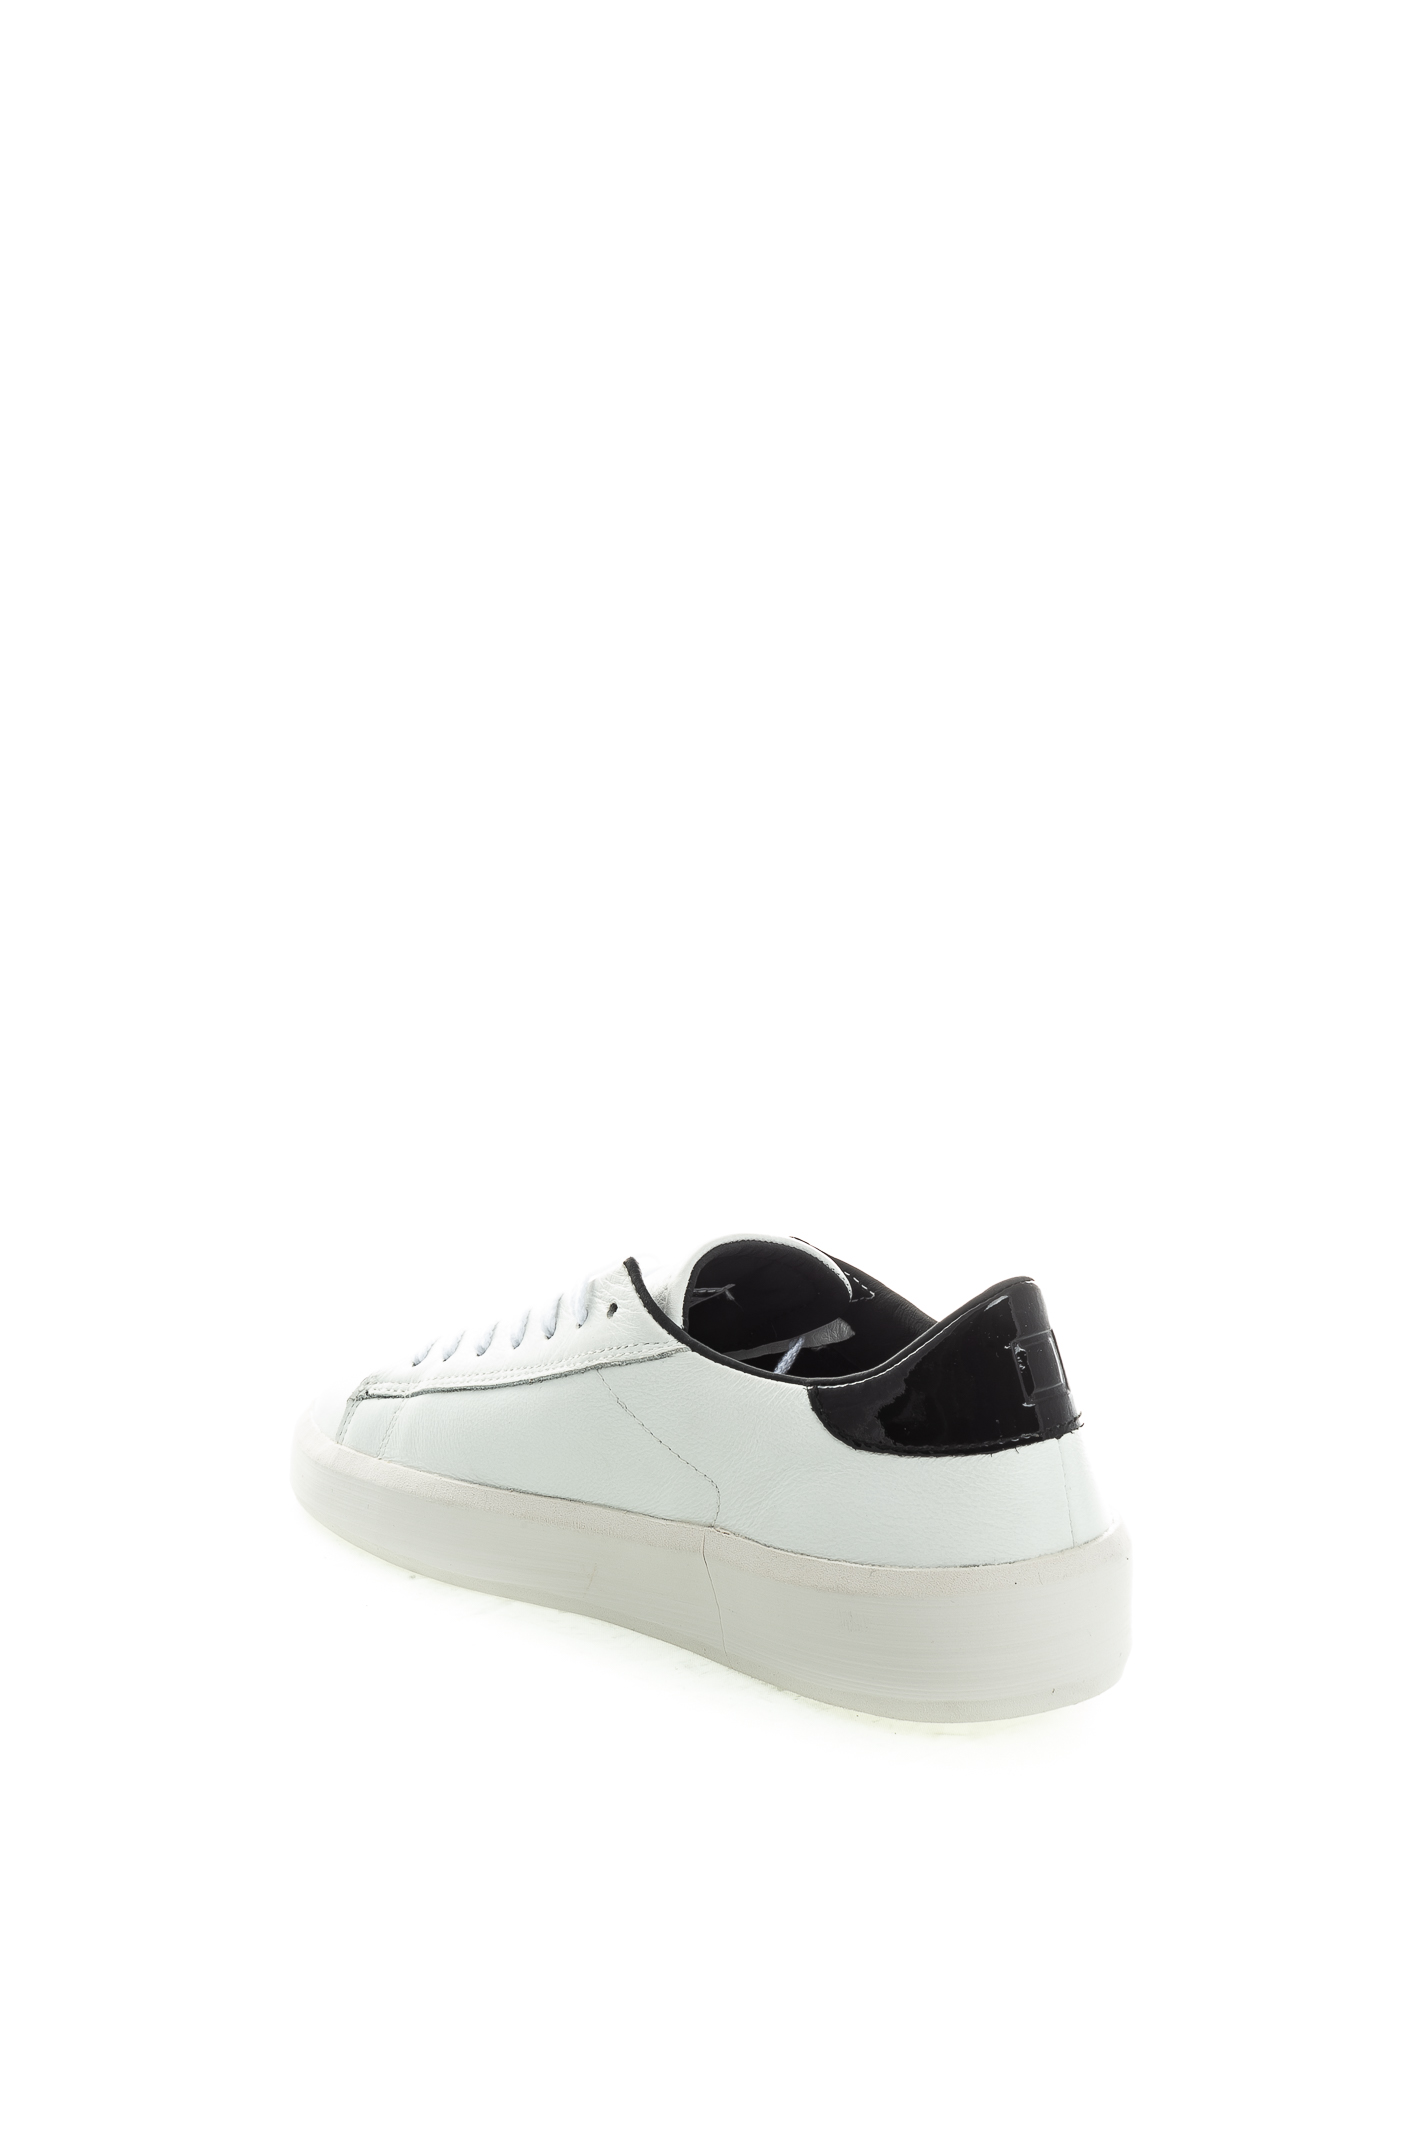 ACE DCALF-WHI/BLACK